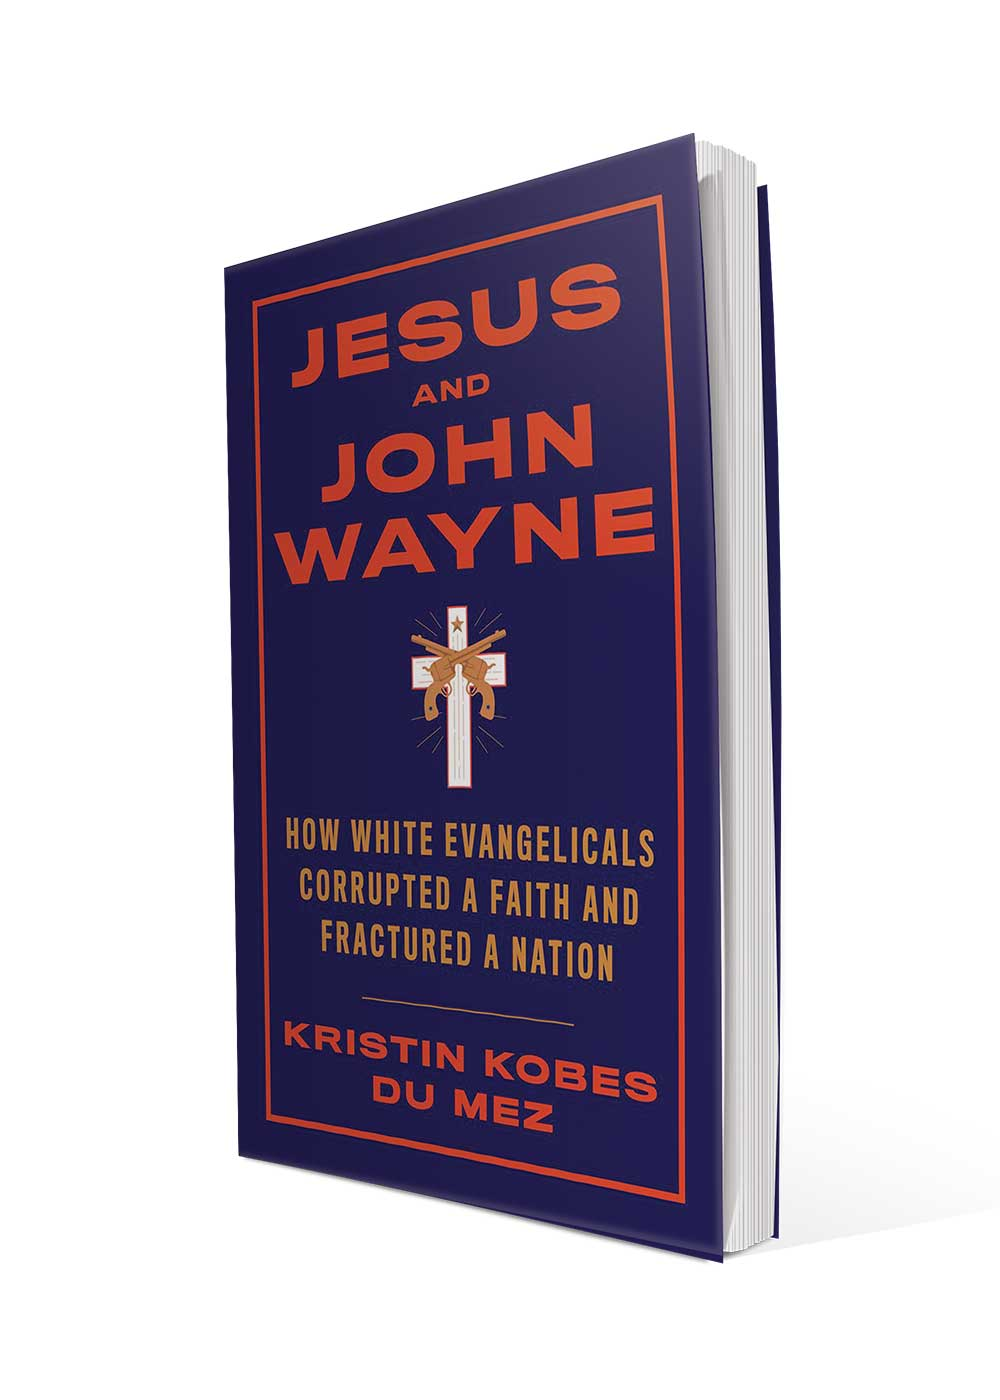 <i>Jesus and John Wayne: How White Evangelicals Corrupted a Faith and Fractured a Nation</i> by Kristin Kobes Du Mez